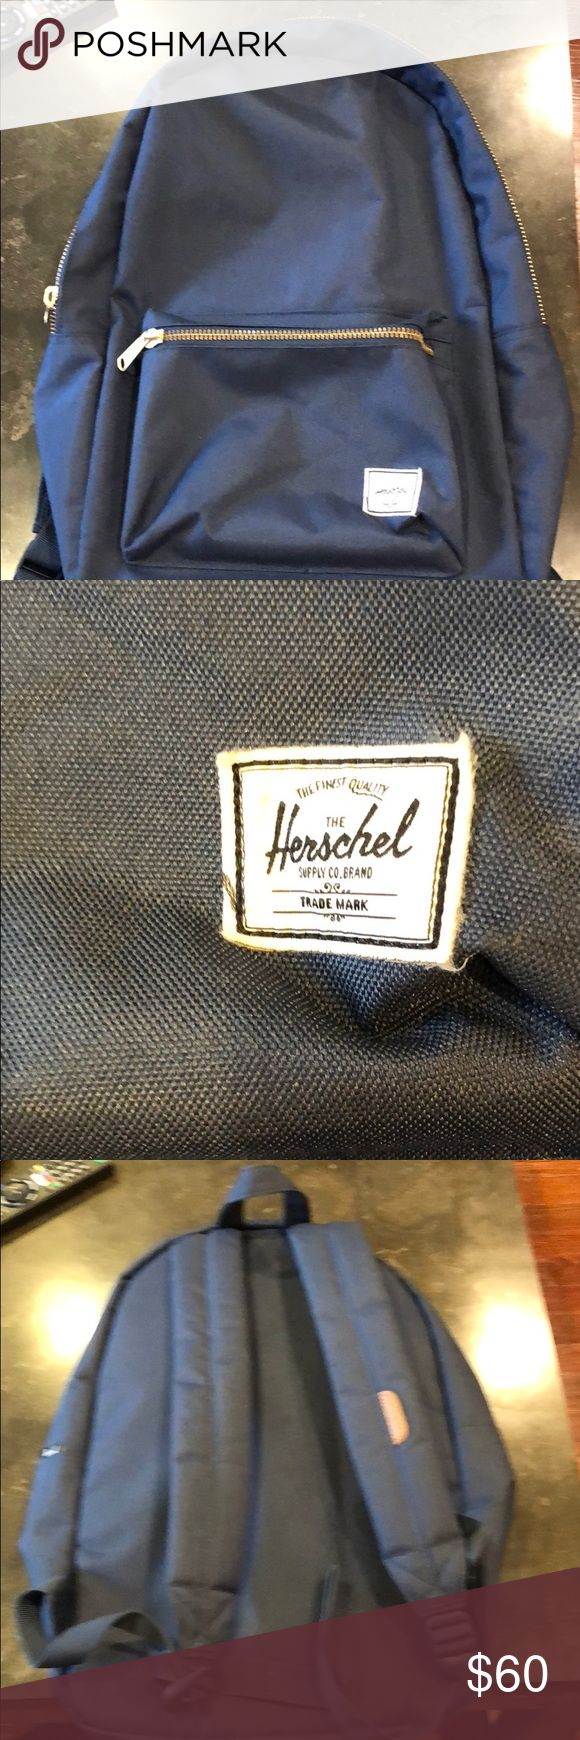 Herschel Backpack Like new Herschel backpack. Carried three times. In perfect condition inside and out. Herschel Supply Company Bags Backpacks